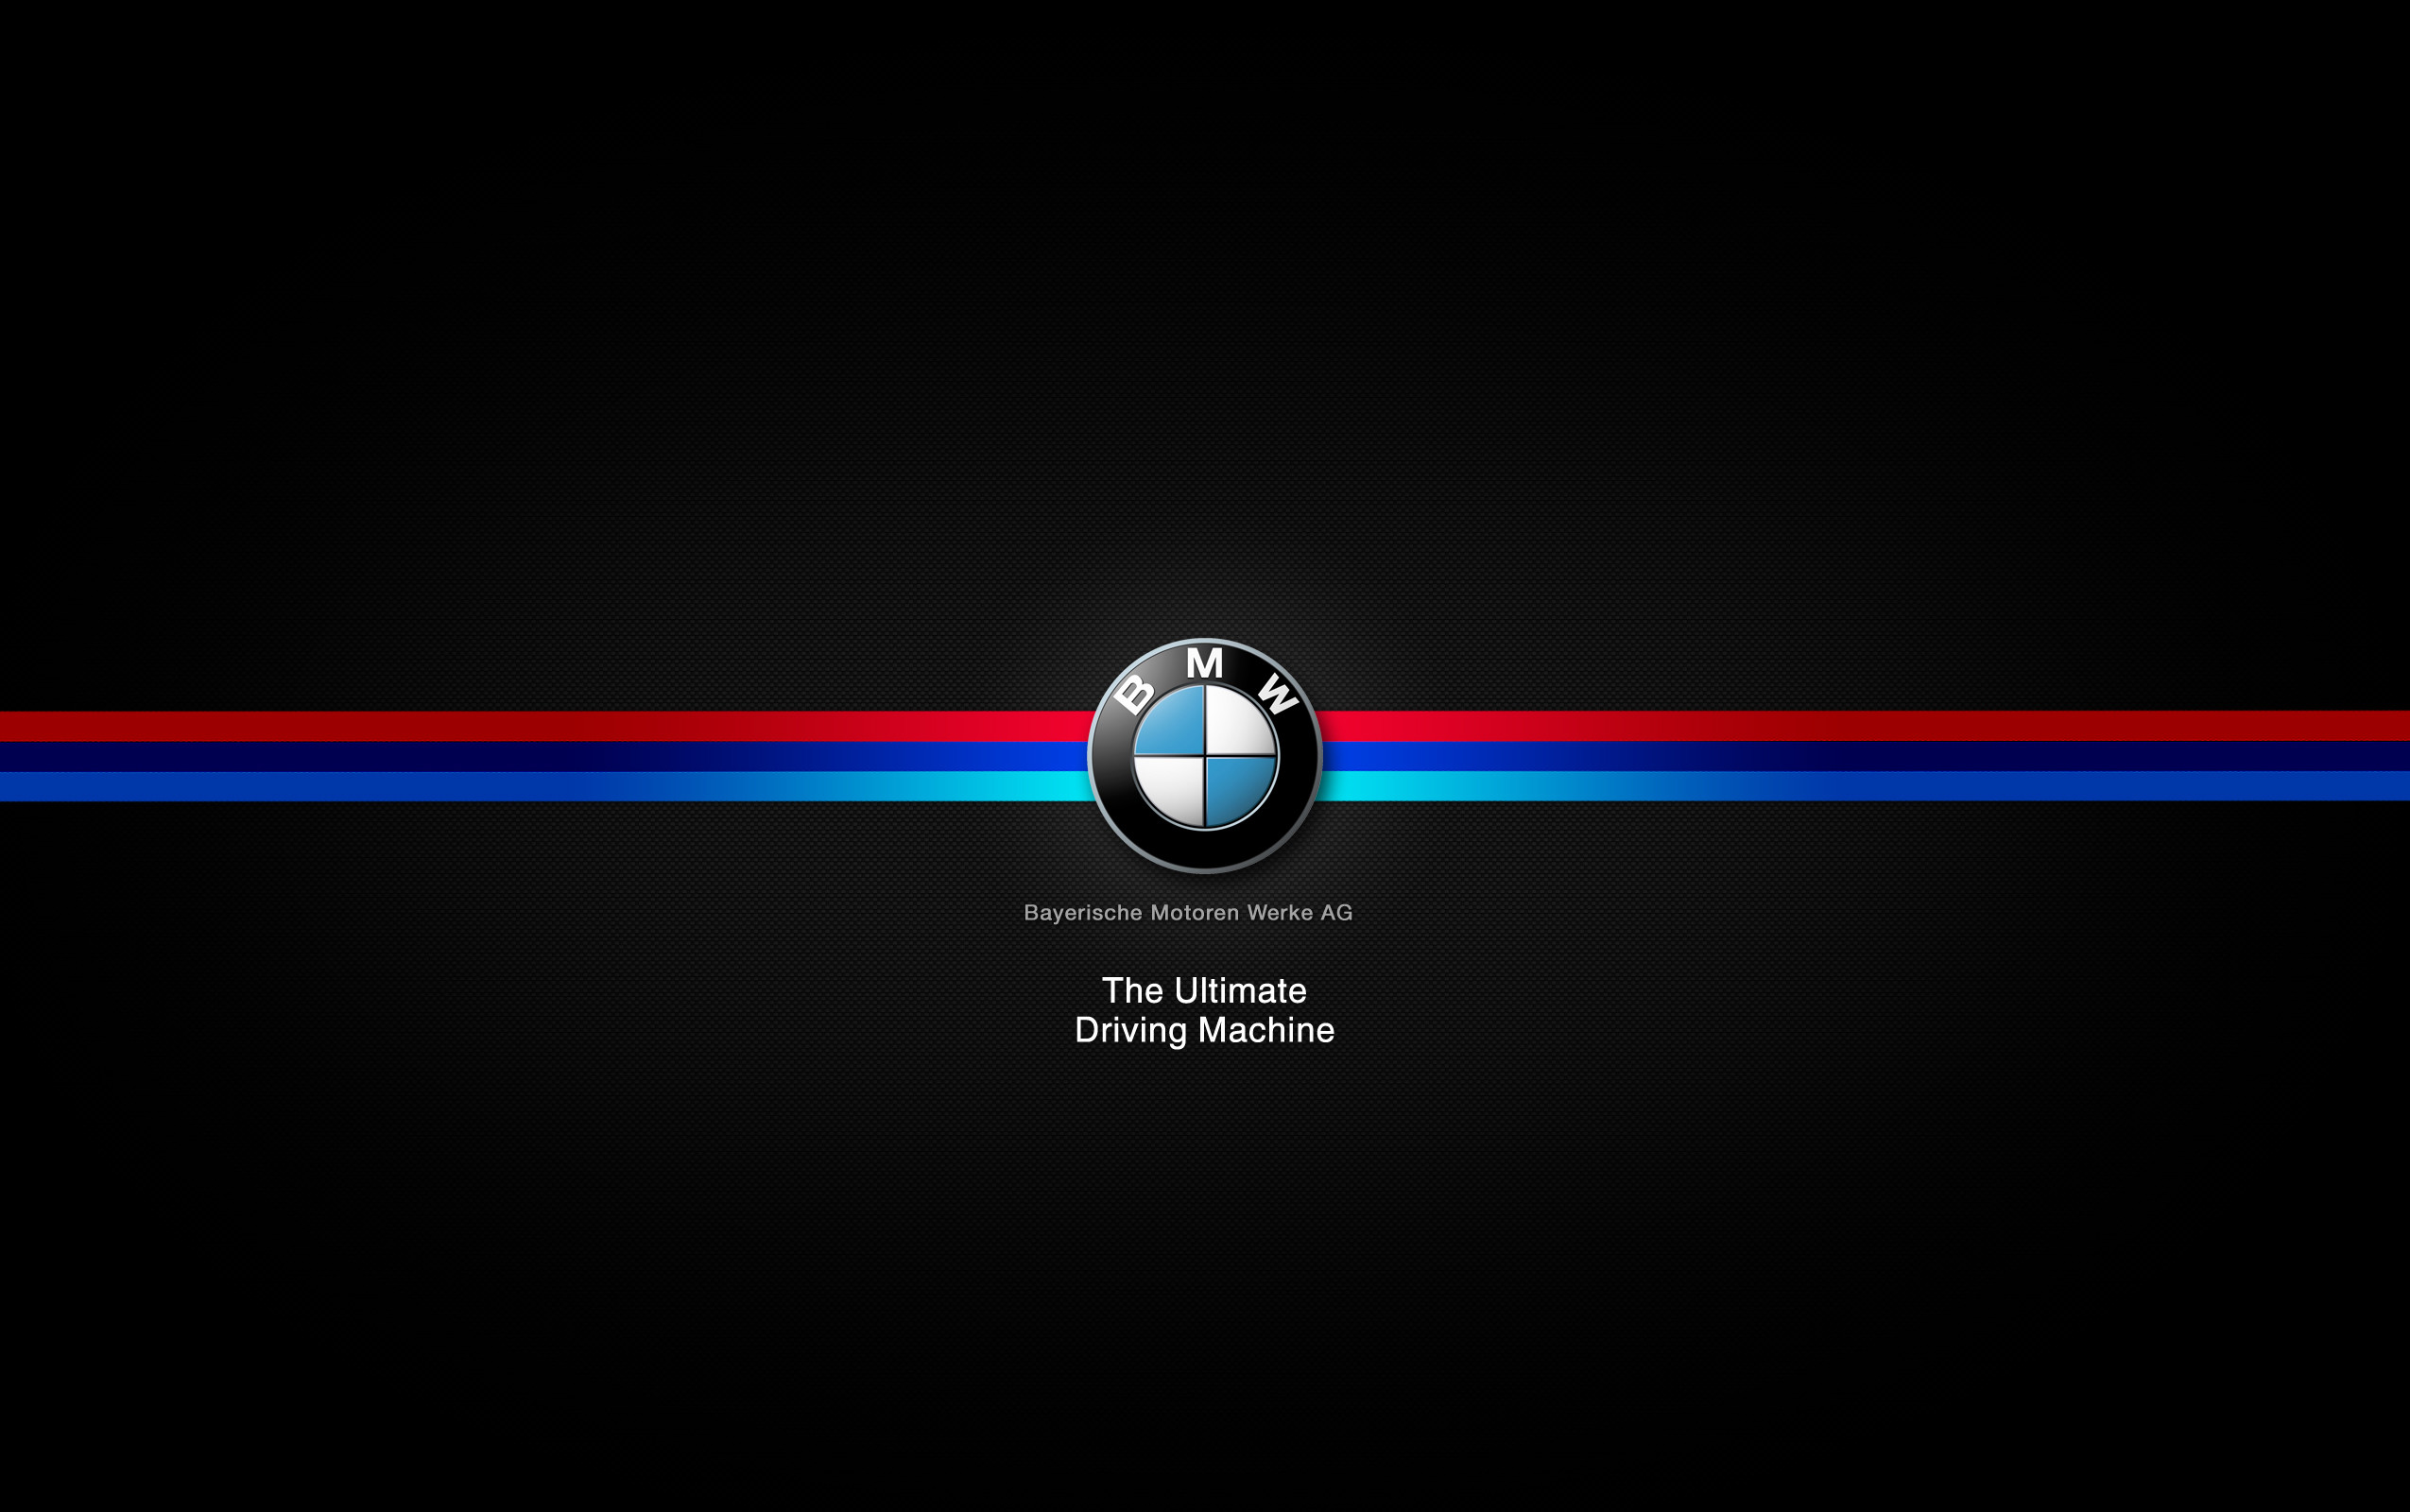 2550x1600 bmw m wallpaper background